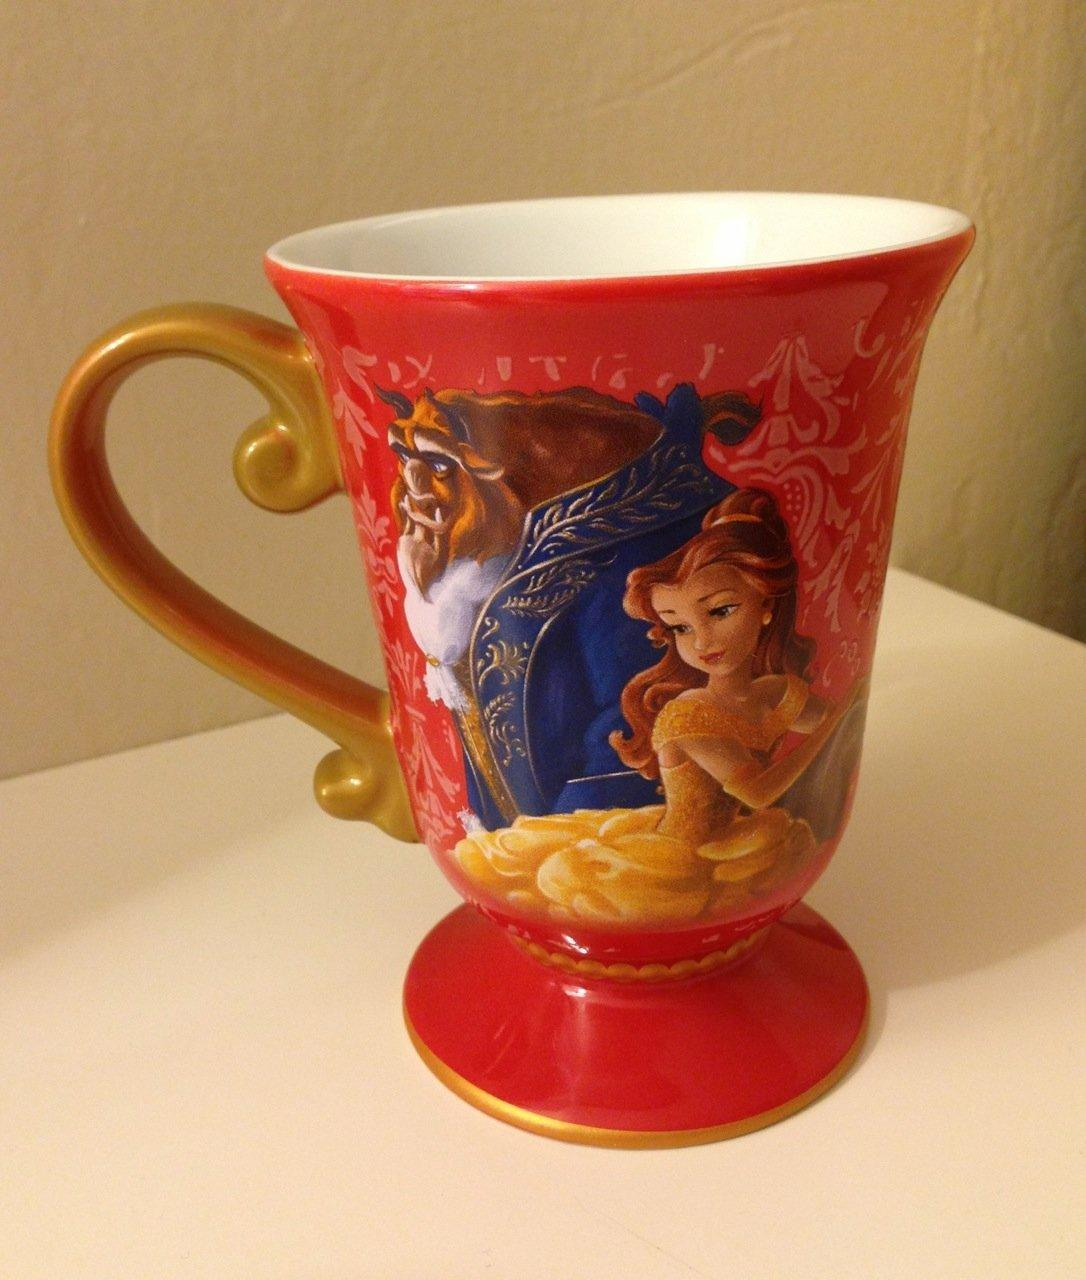 Designer Cups And Mugs Disney Store Disney Fairytale Designer From Amazon Other